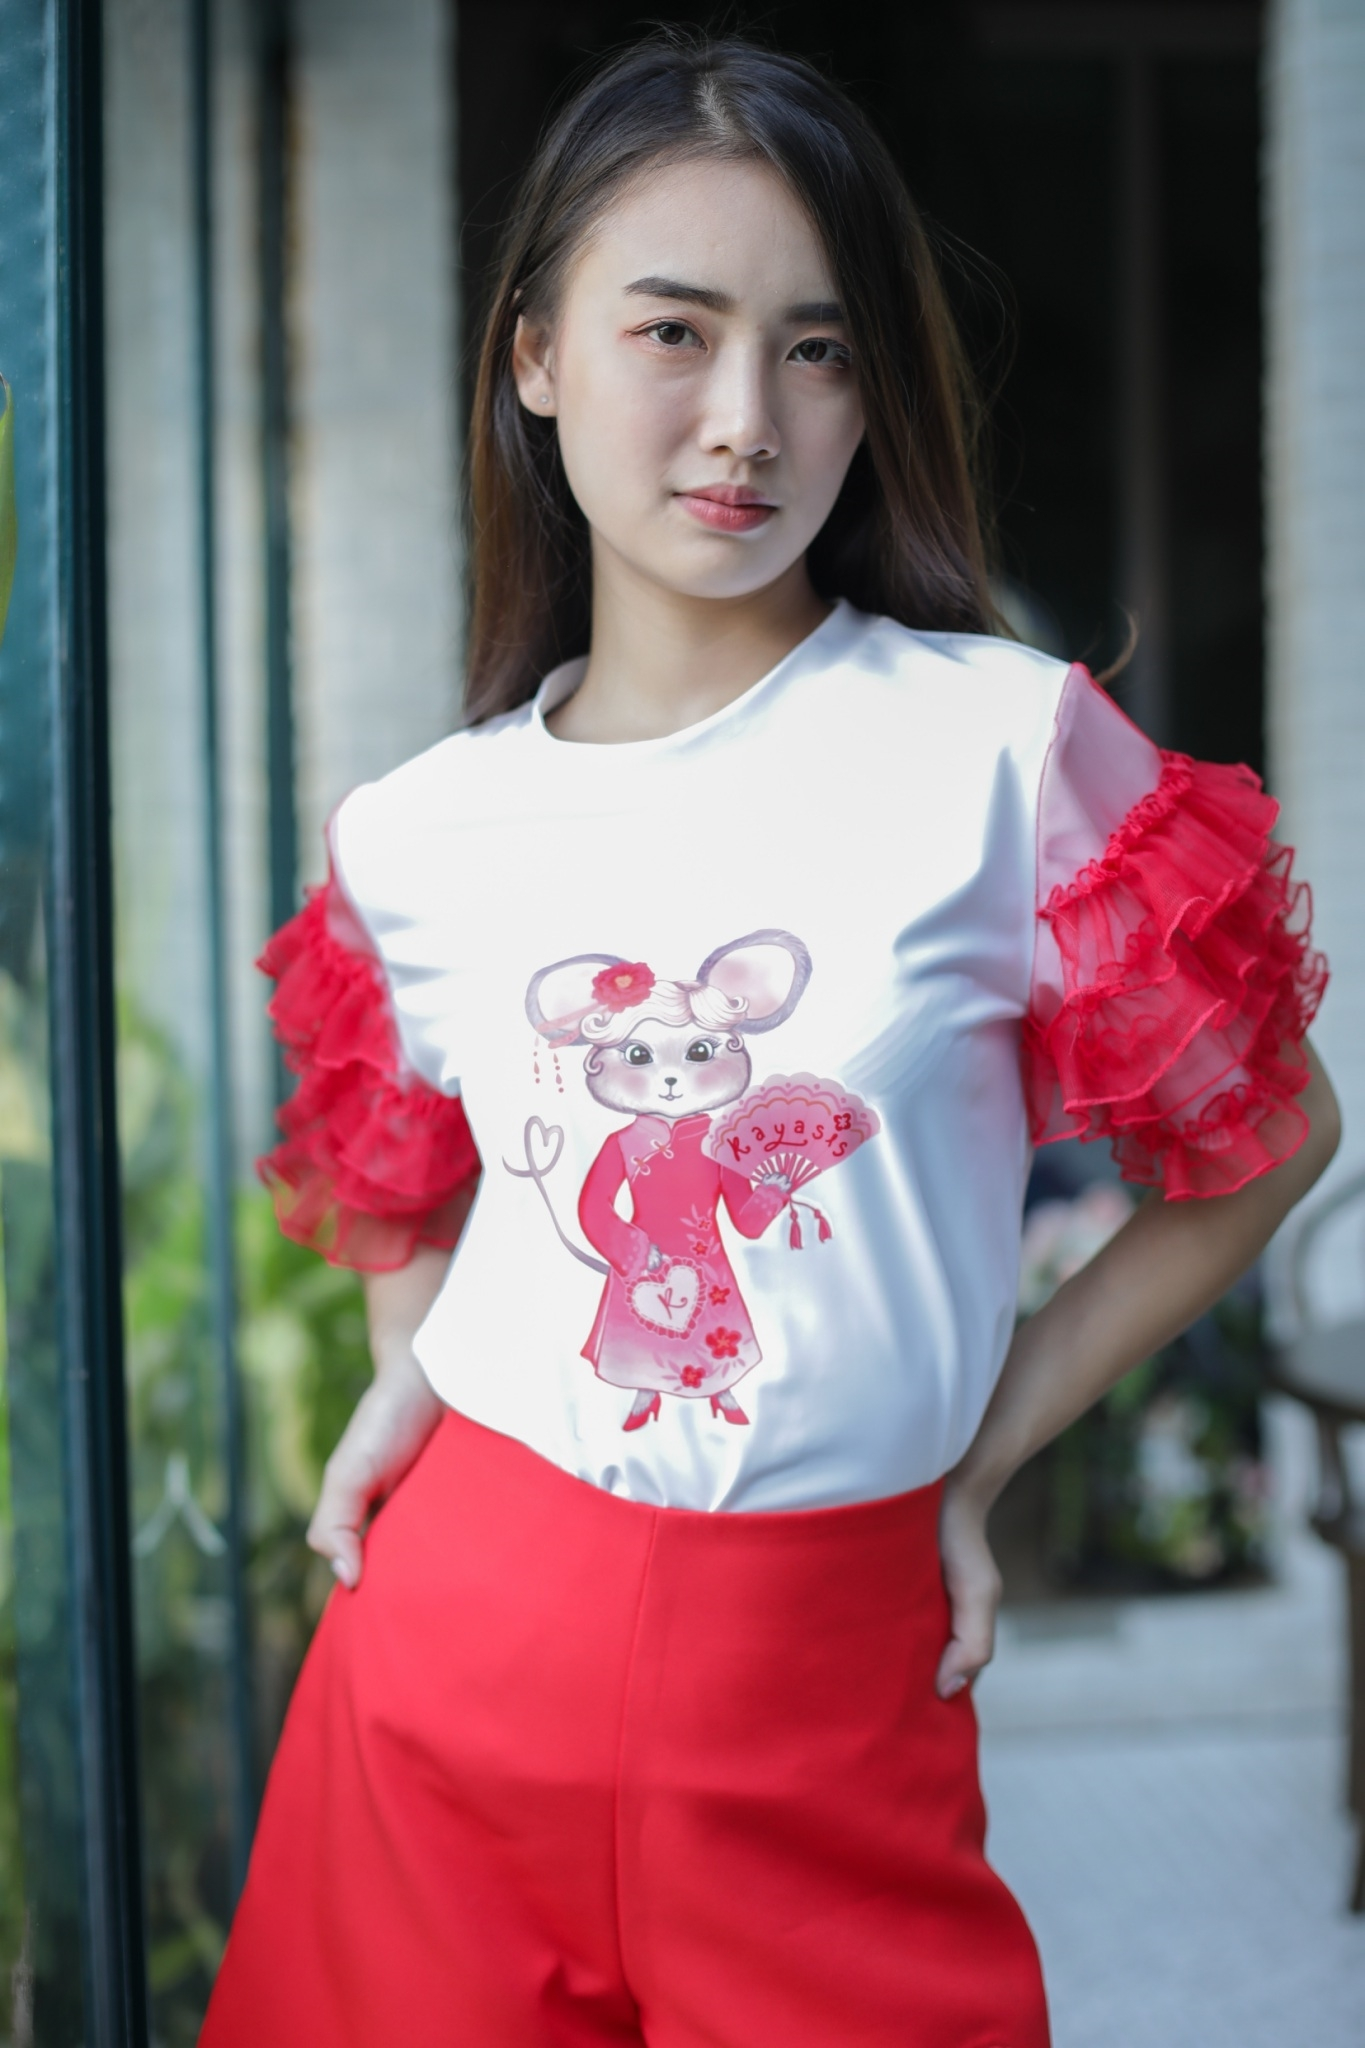 CN05 - The Chinese Mouse Ruffled Sleeve T Shirt - In Stock 12th Jan